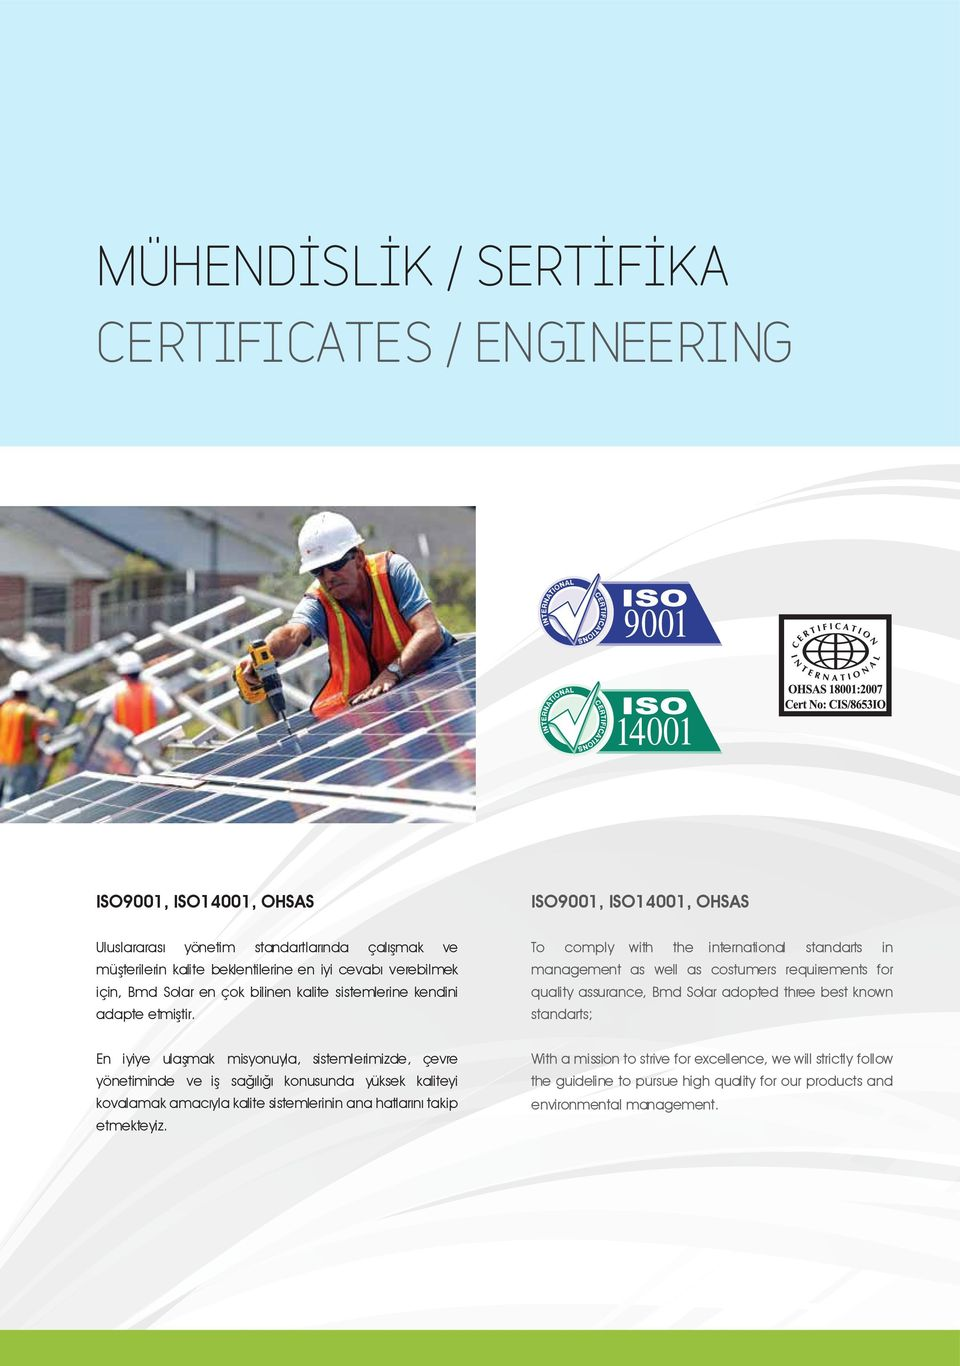 To comply with the international standarts in management as well as costumers requirements for quality assurance, Bmd Solar adopted three best known standarts; En iyiye ulaşmak misyonuyla,